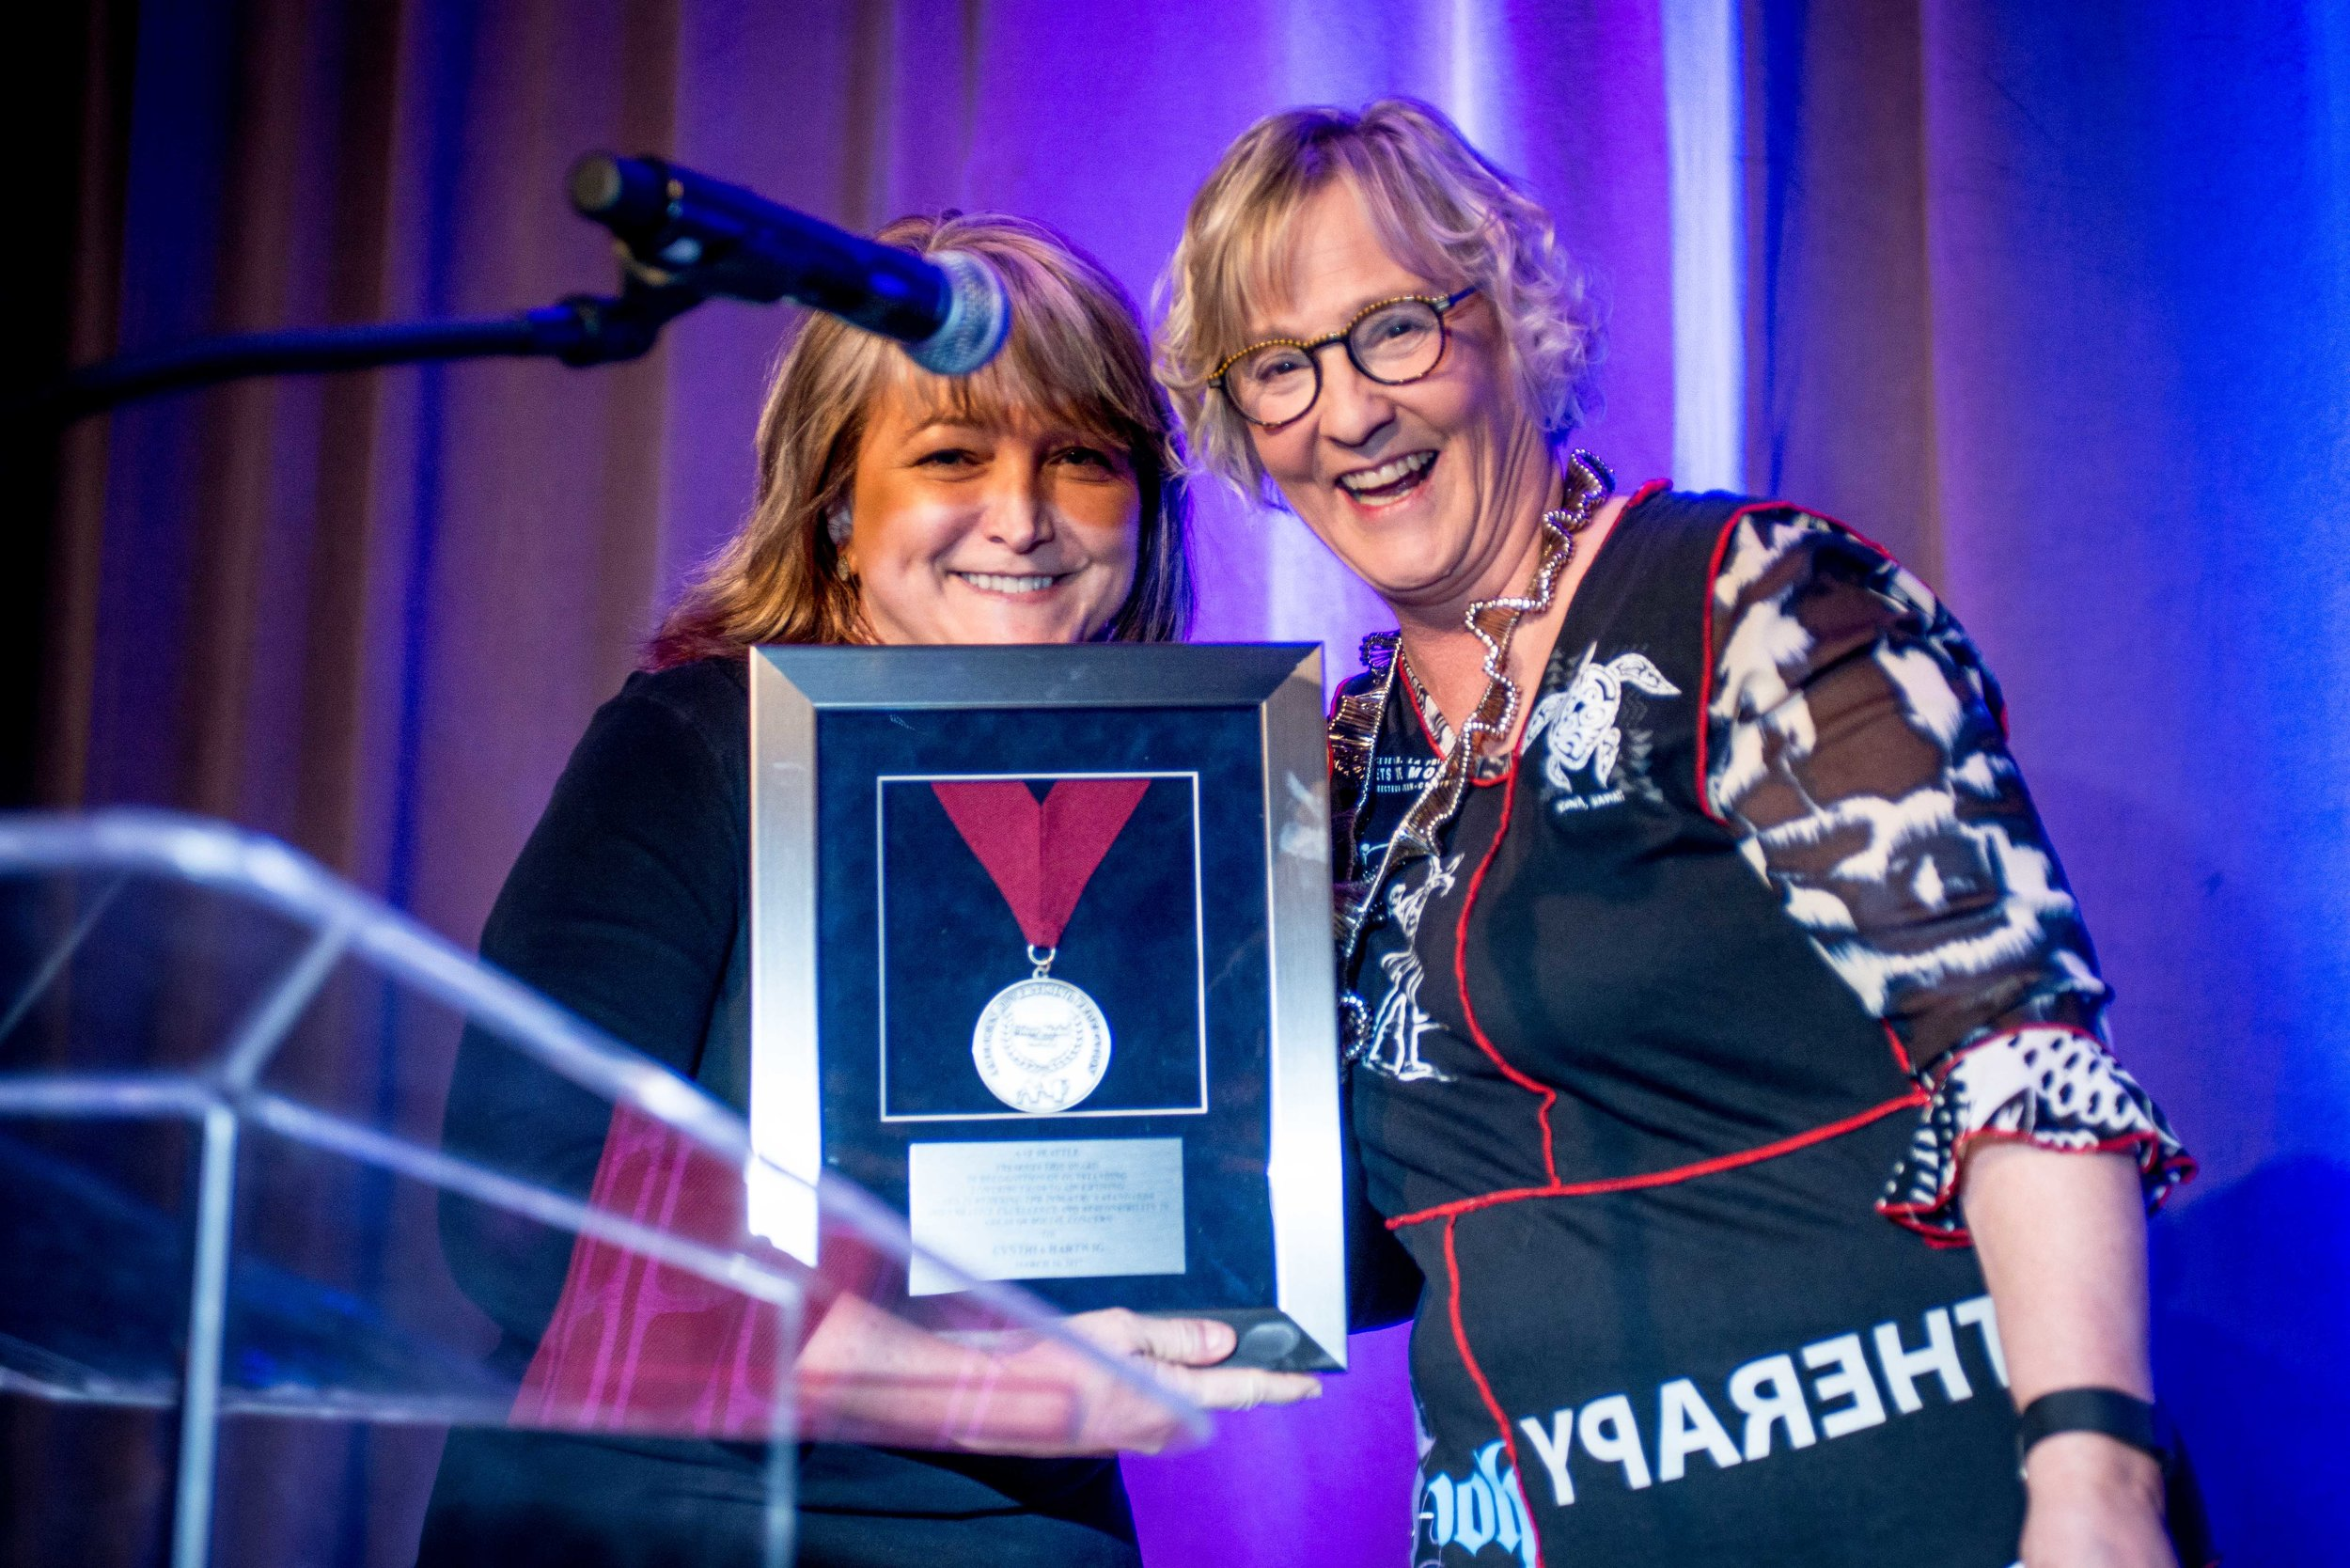 Cynthia Hartwig (R) with the AAF Silver Medal Award, presented to her by Mary Knight (L)